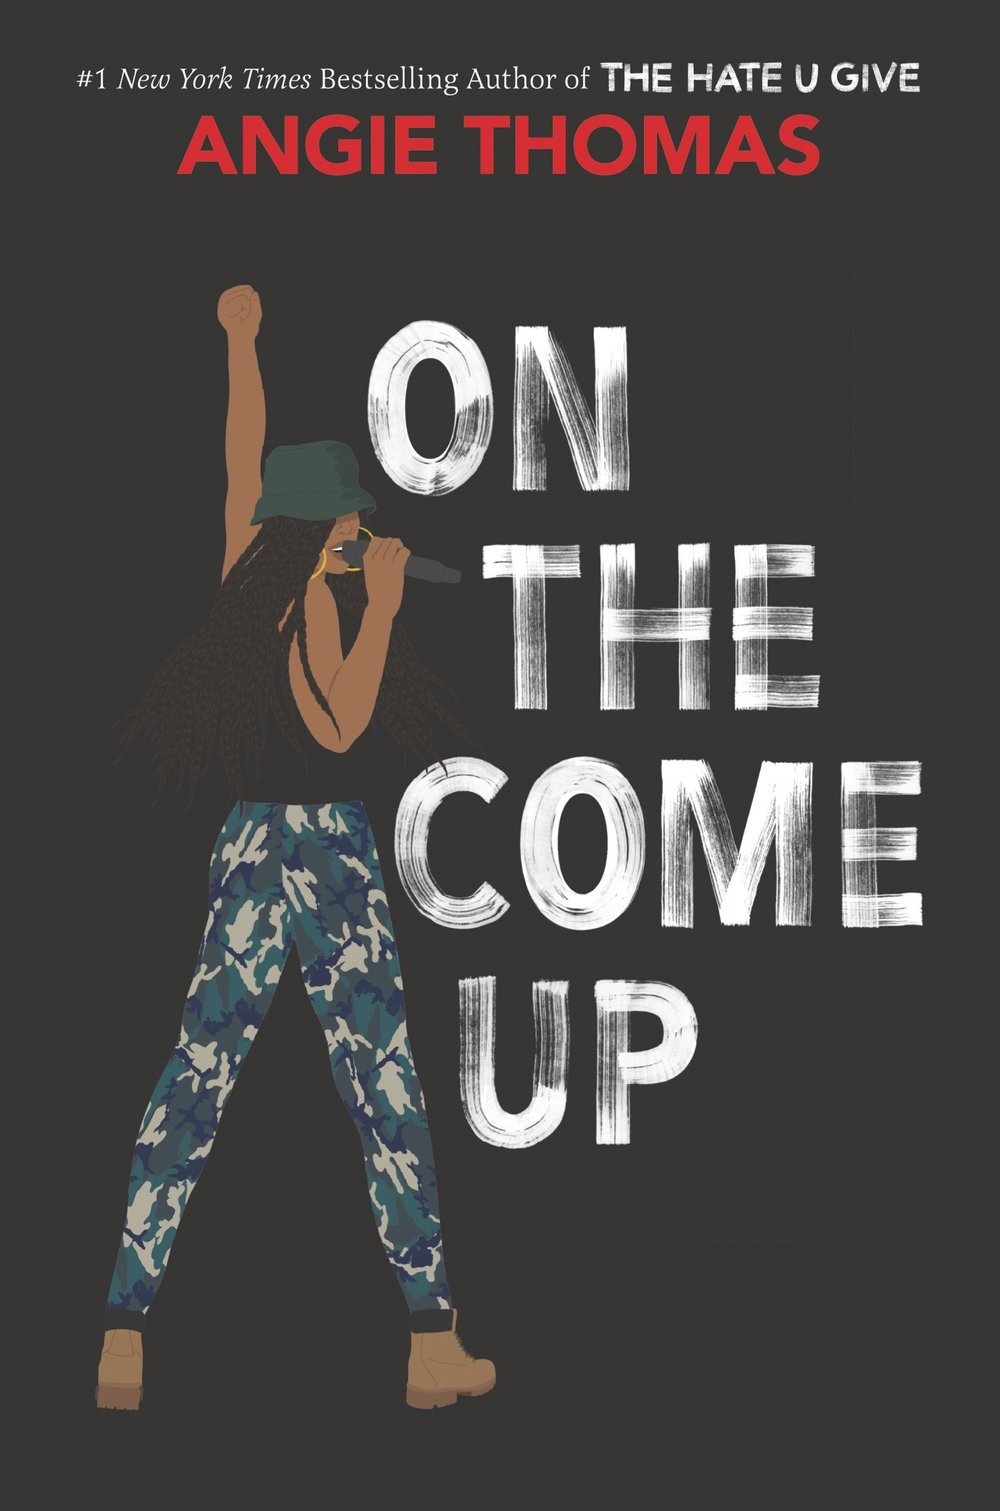 This is the highly anticipated second novel by Angie Thomas, the author of the #1 New York Times bestselling, award-winning The Hate U Give. Insightful, unflinching, and full of heart, On the Come Up is an ode to hip hop from one of the most influential literary voices of a generation. It is the story of fighting for your dreams, even as the odds are stacked against you; and about how, especially for young black people, freedom of speech isn't always free.